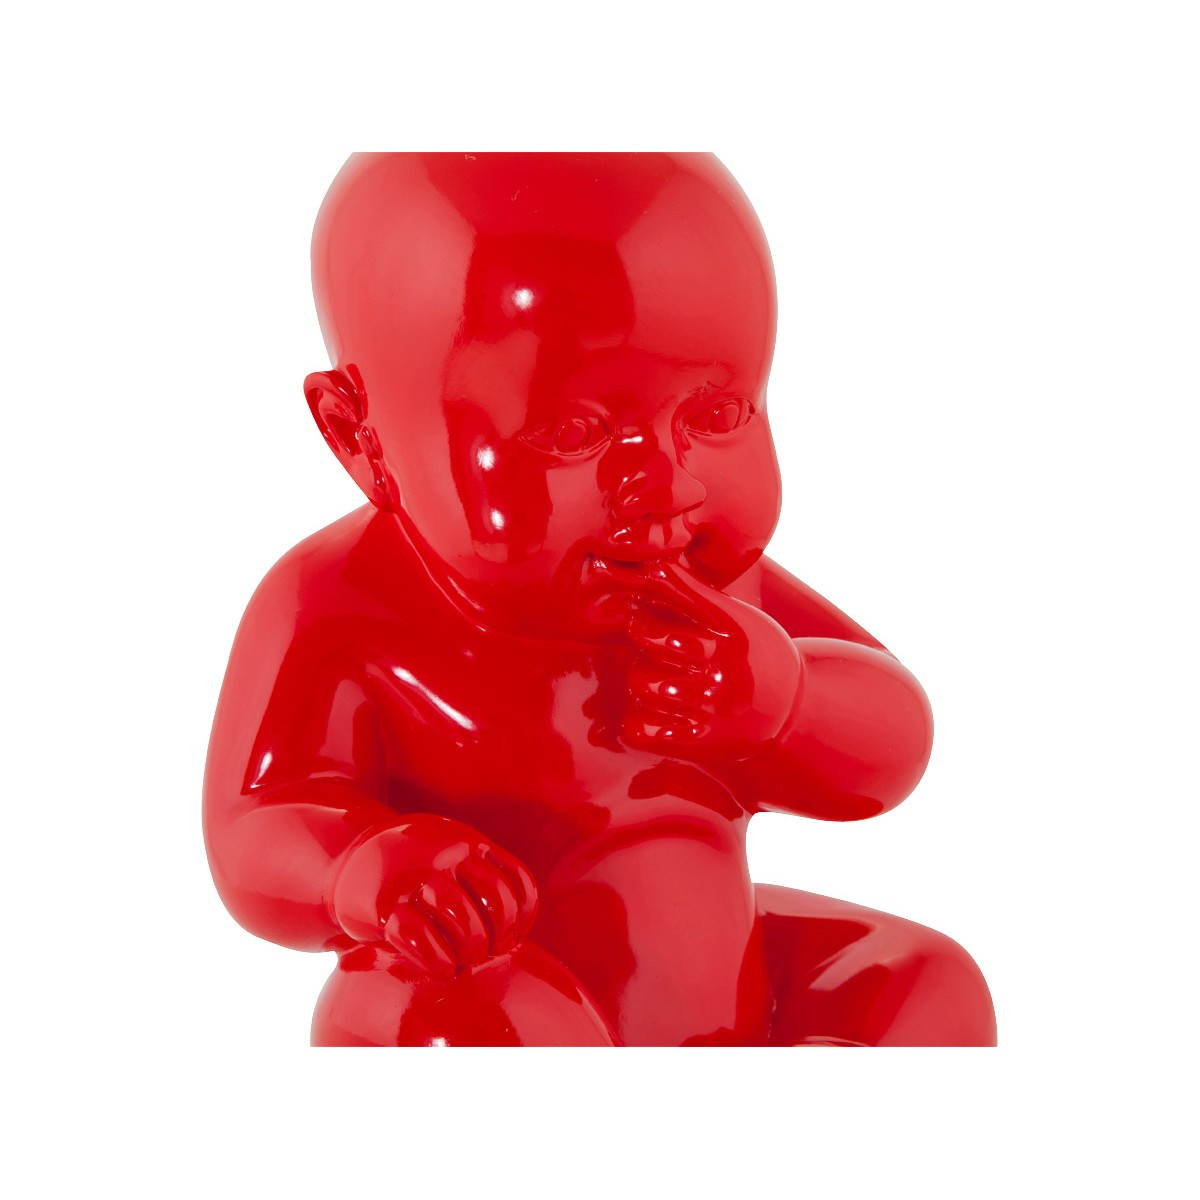 Statuette form baby kissous fibreglass red english english - Fibre de verre decorative ...